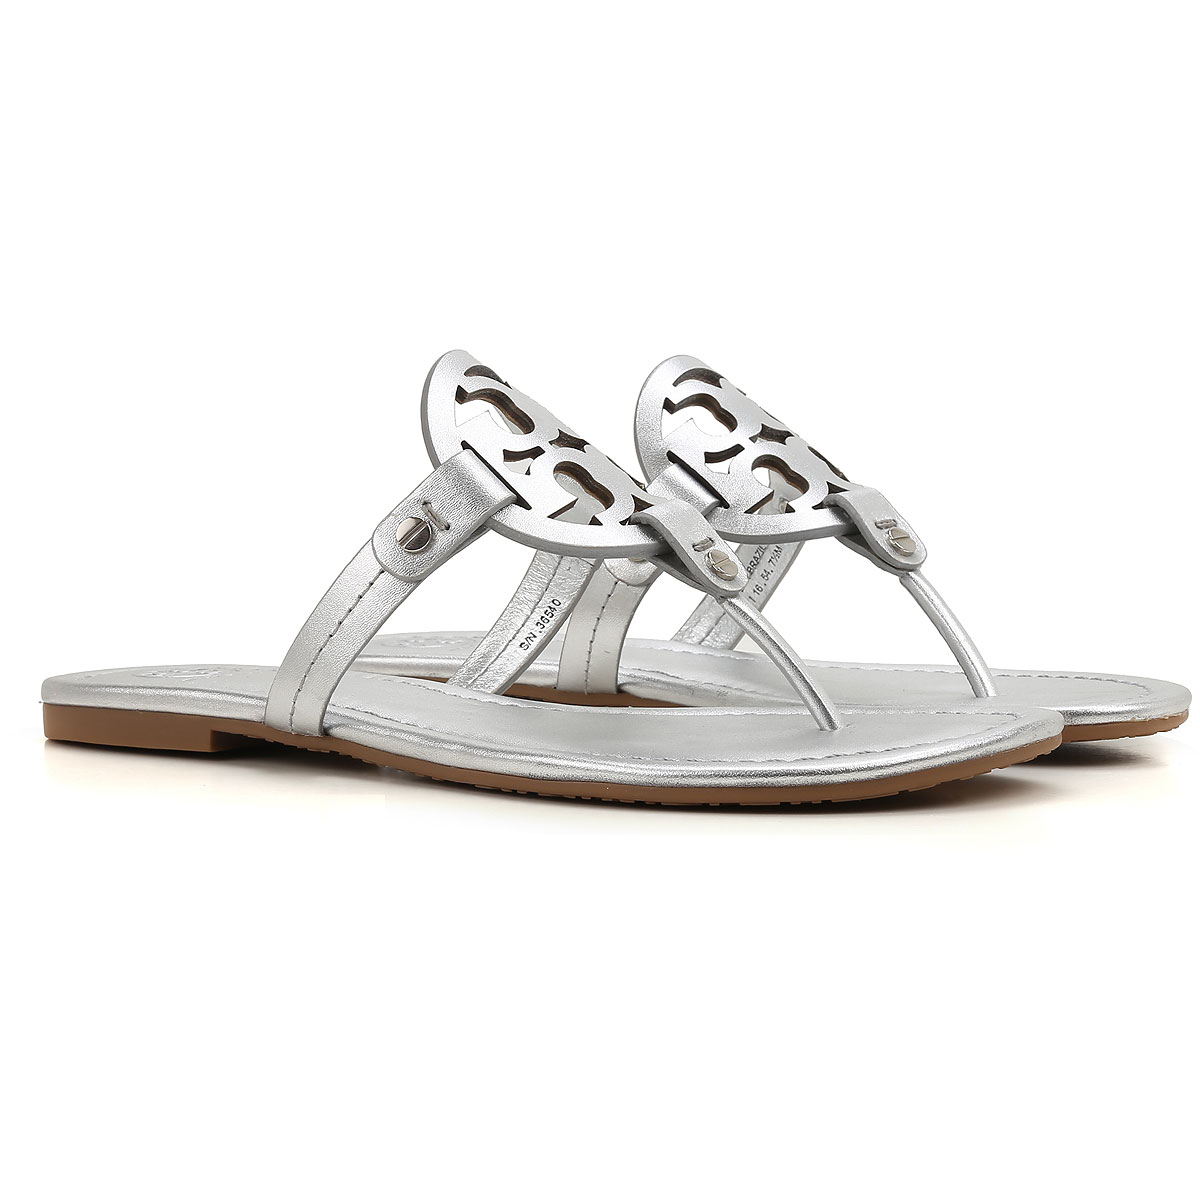 Tory Burch Sandals for Women On Sale, Silver, Leather, 2017, 6 6.5 USA-389639